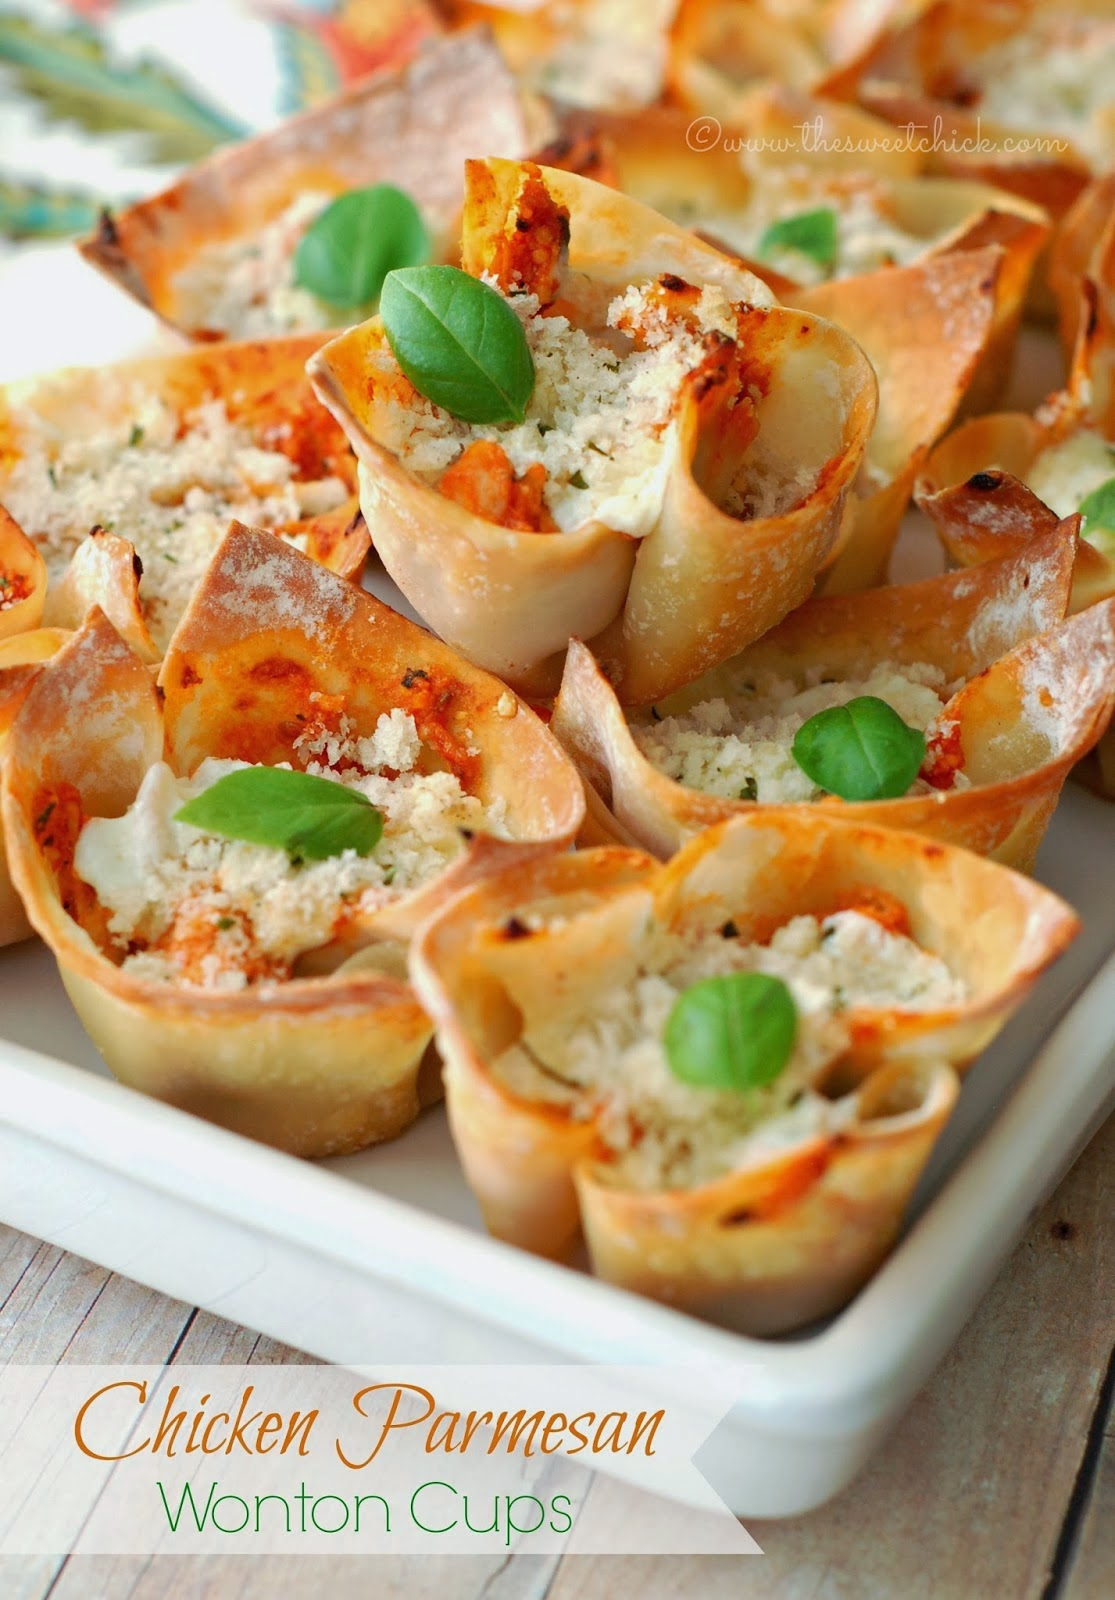 Chicken Parmesan Wonton Cups @www.thesweetchick.com